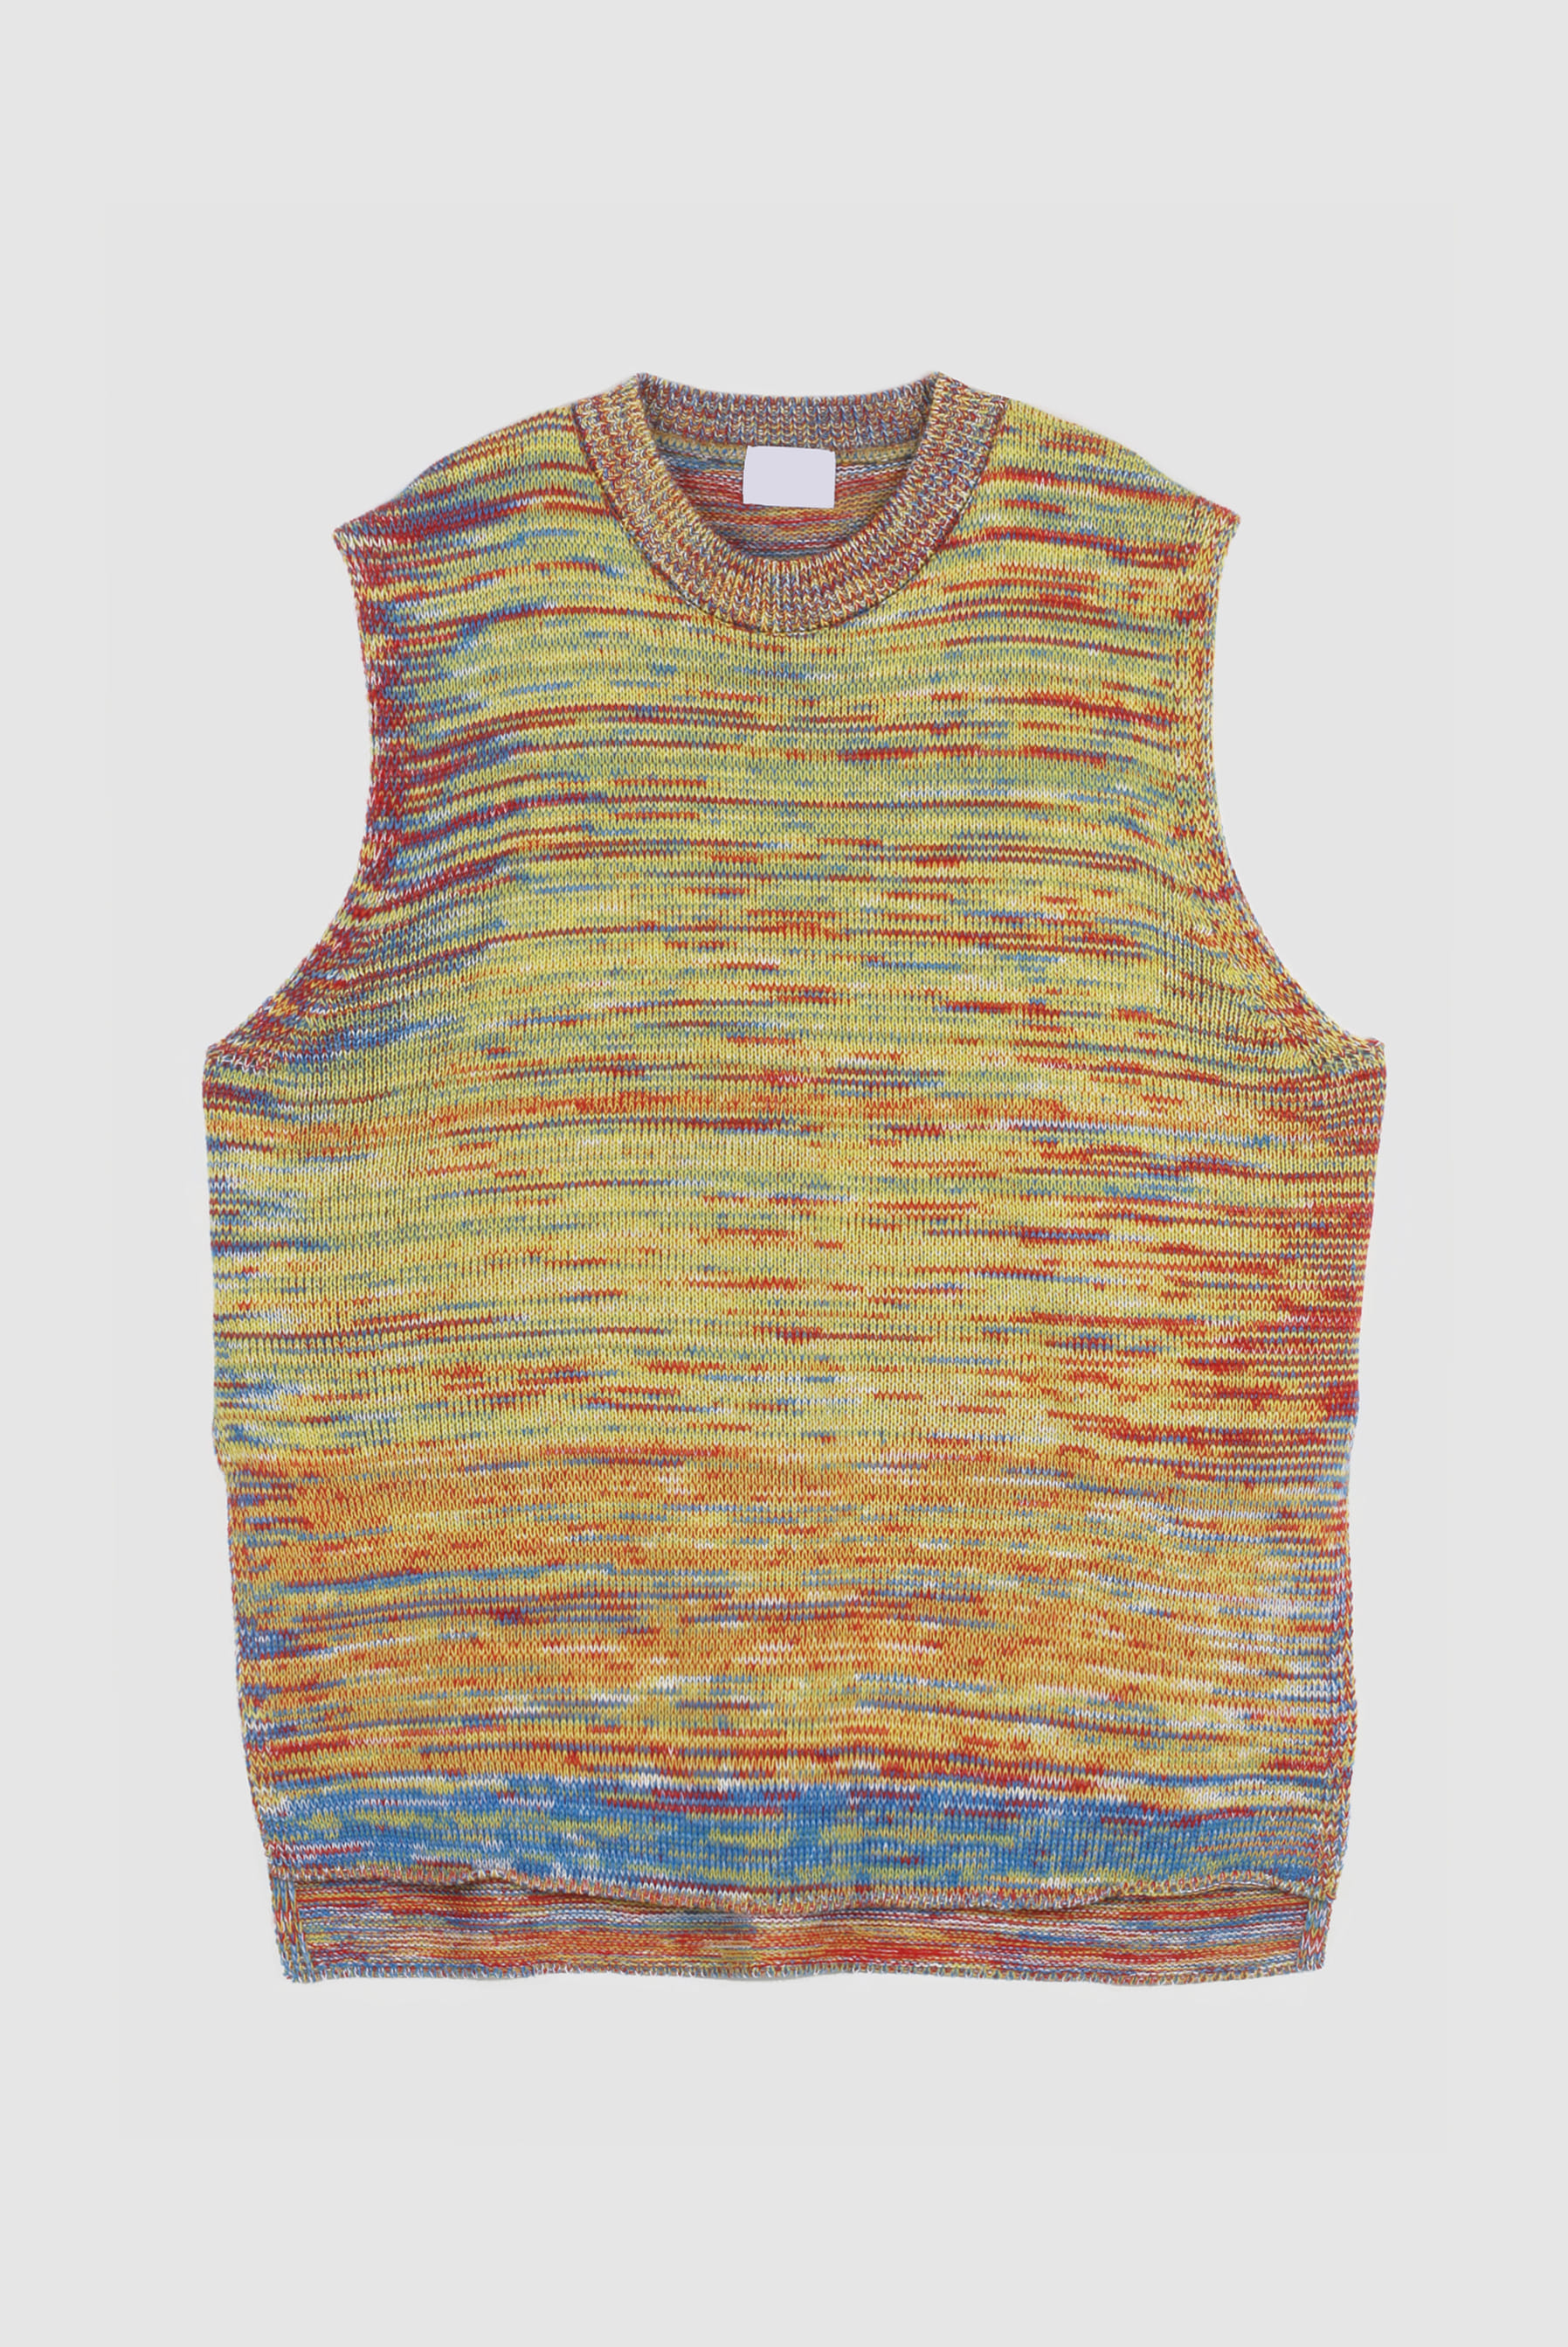 Mix_Color Knit_Vest